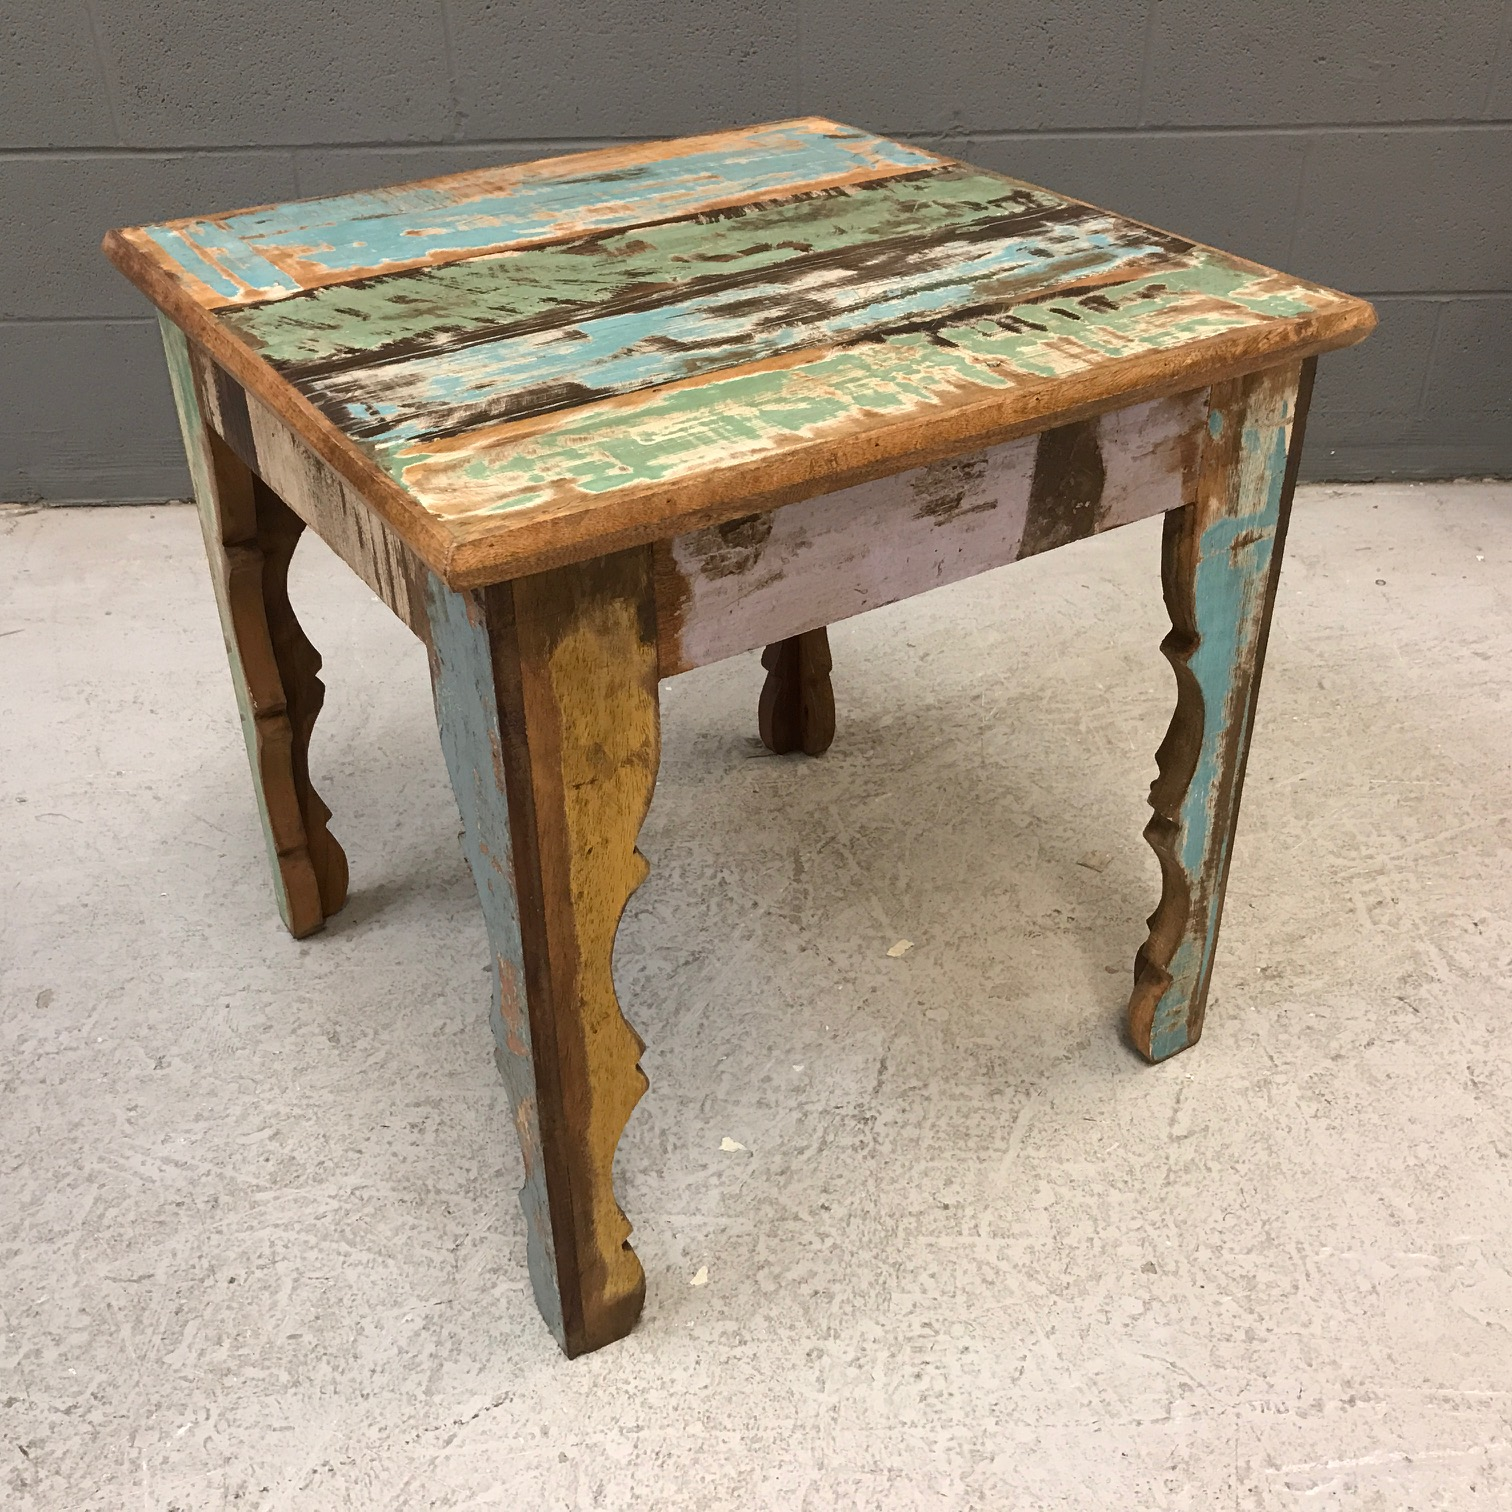 furniture beauty home with reclaimed wood side table wrought iron accent distressed nesting tables griffin pottery barn heavy duty coffee reclaime rustic display ikea small door